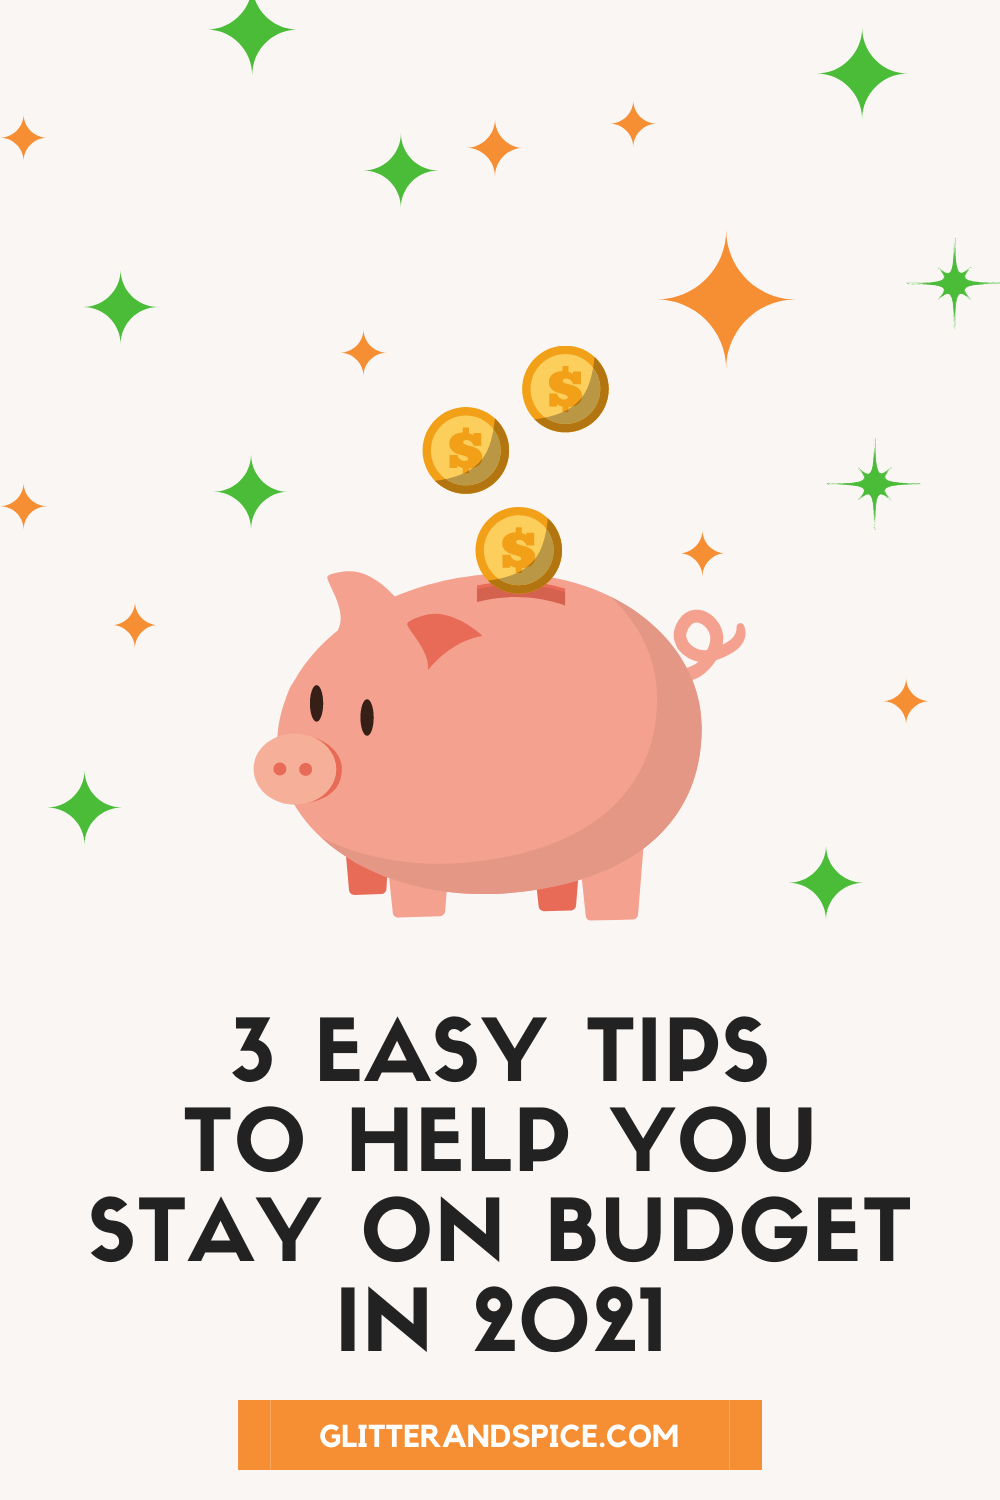 3 easy tips to help you stay on budget in 2021 graphic for Pinterest